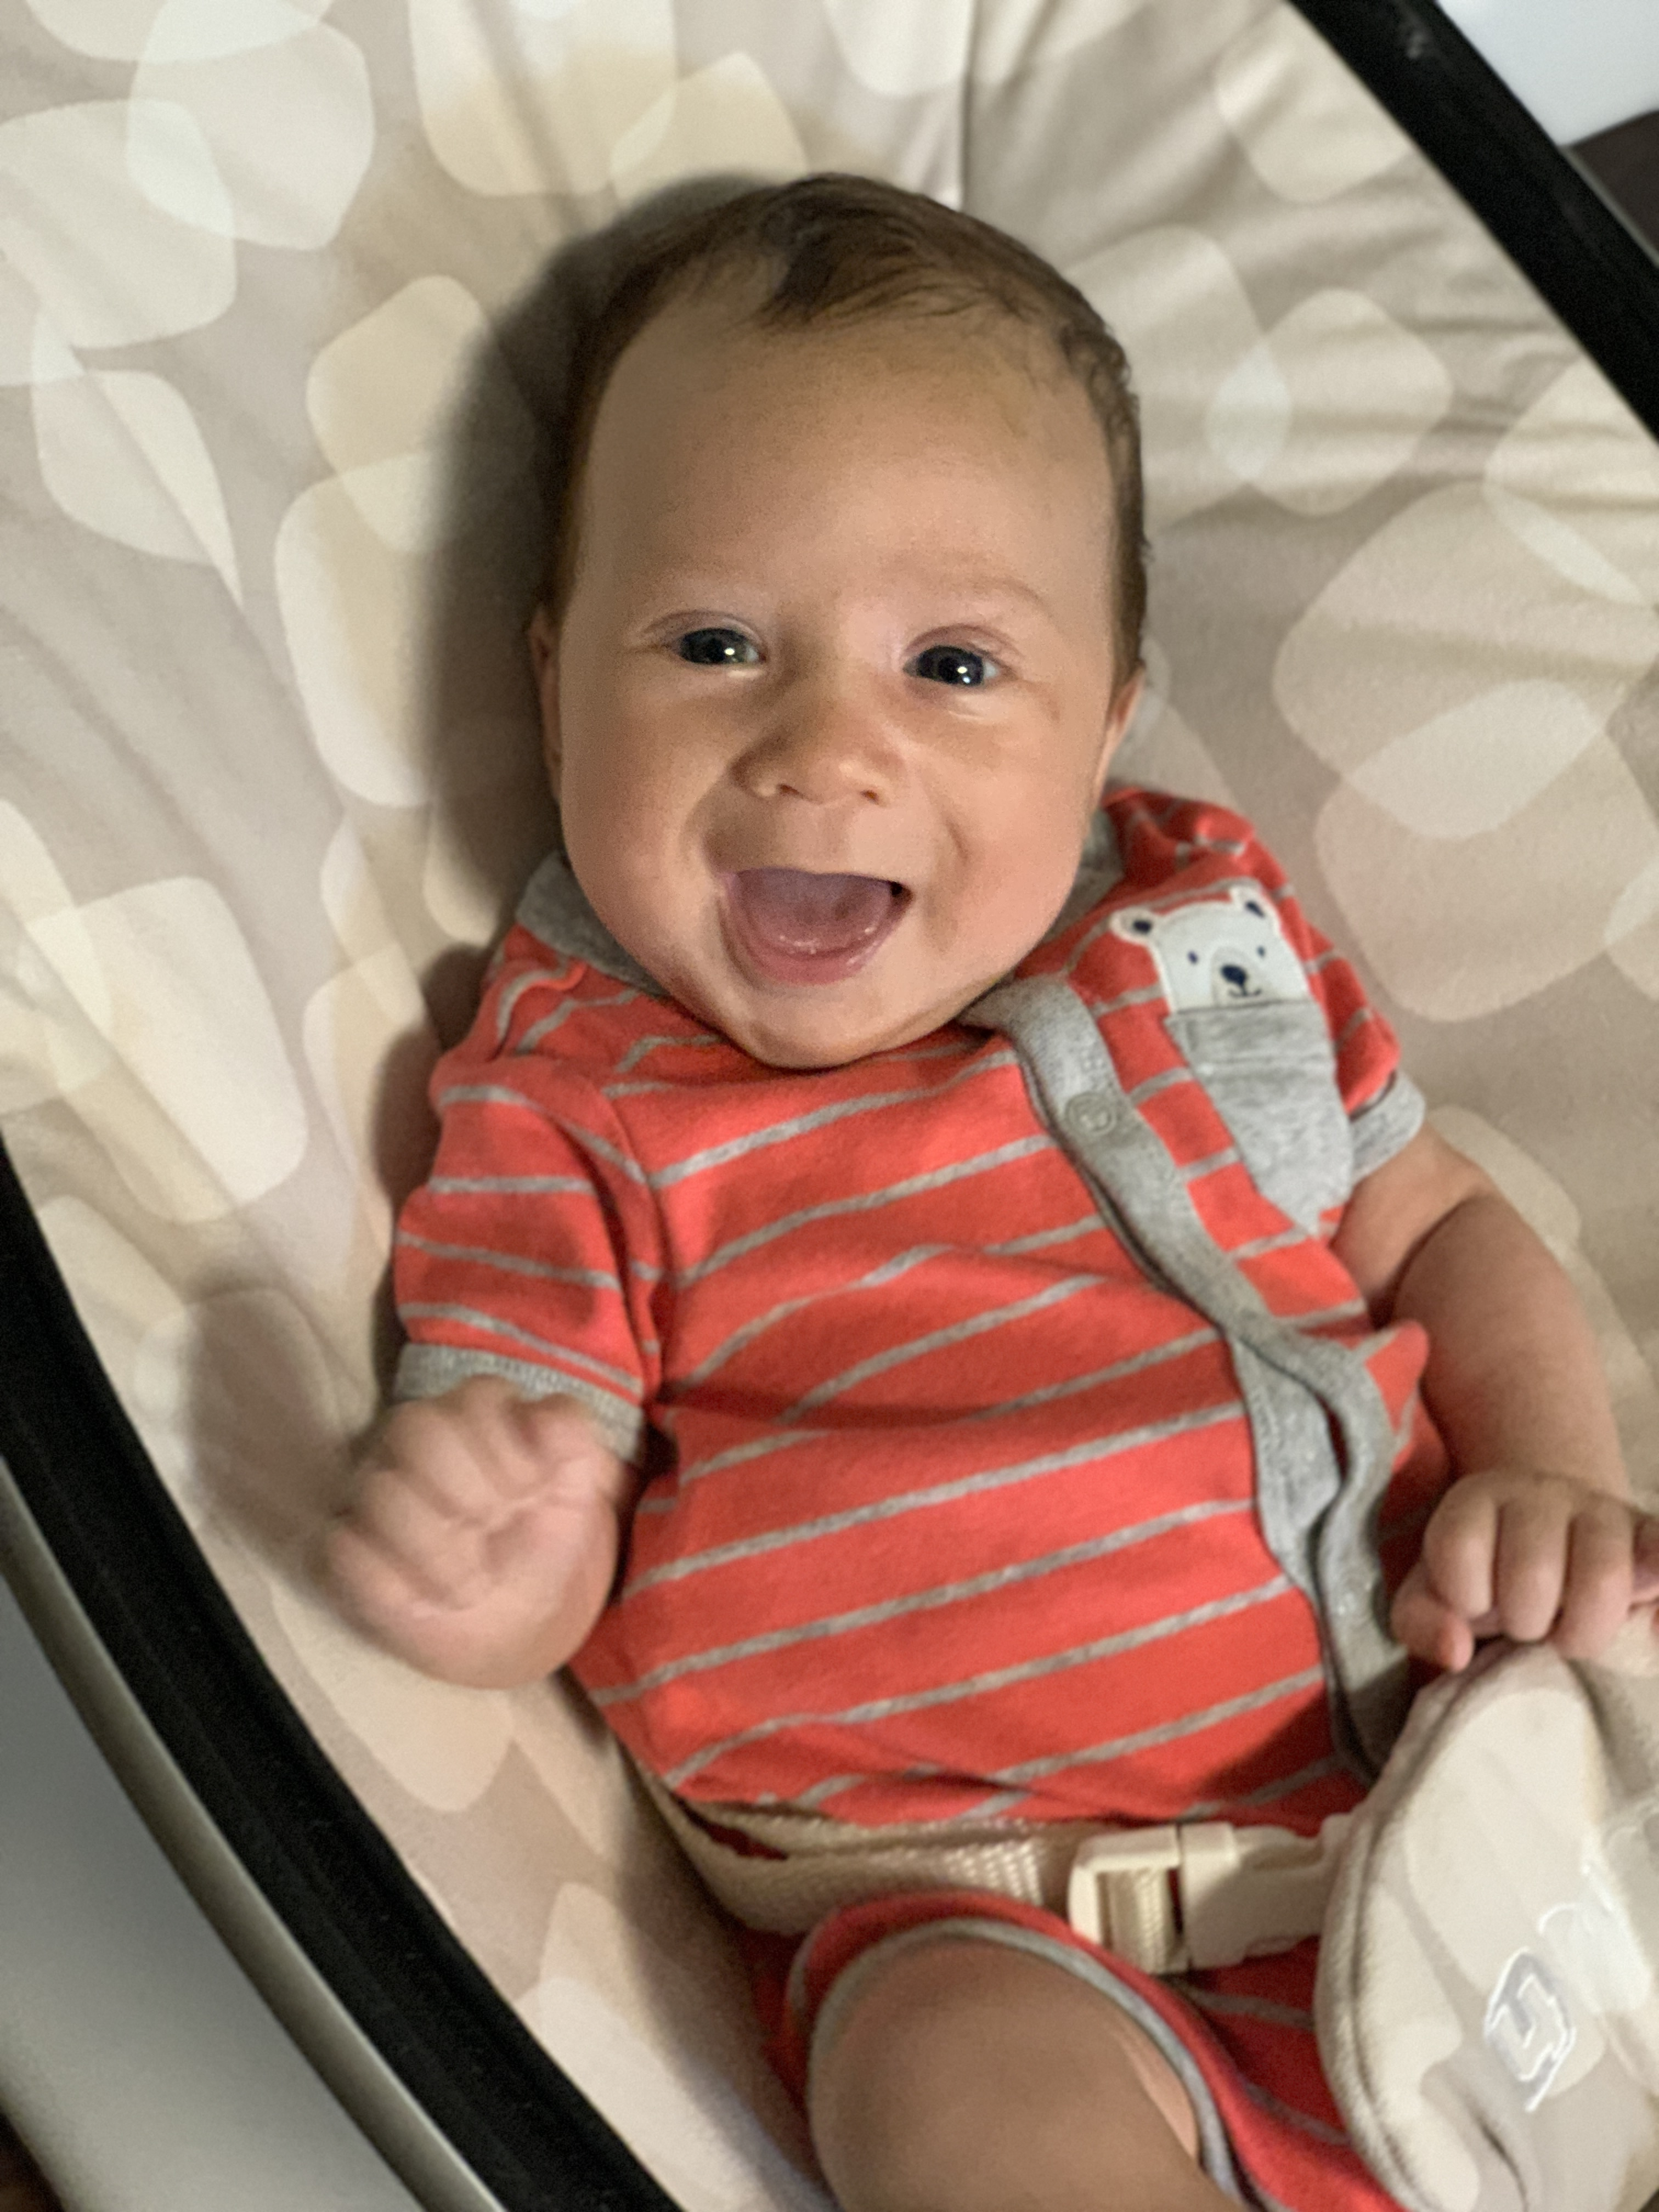 Brody-2months-smile2